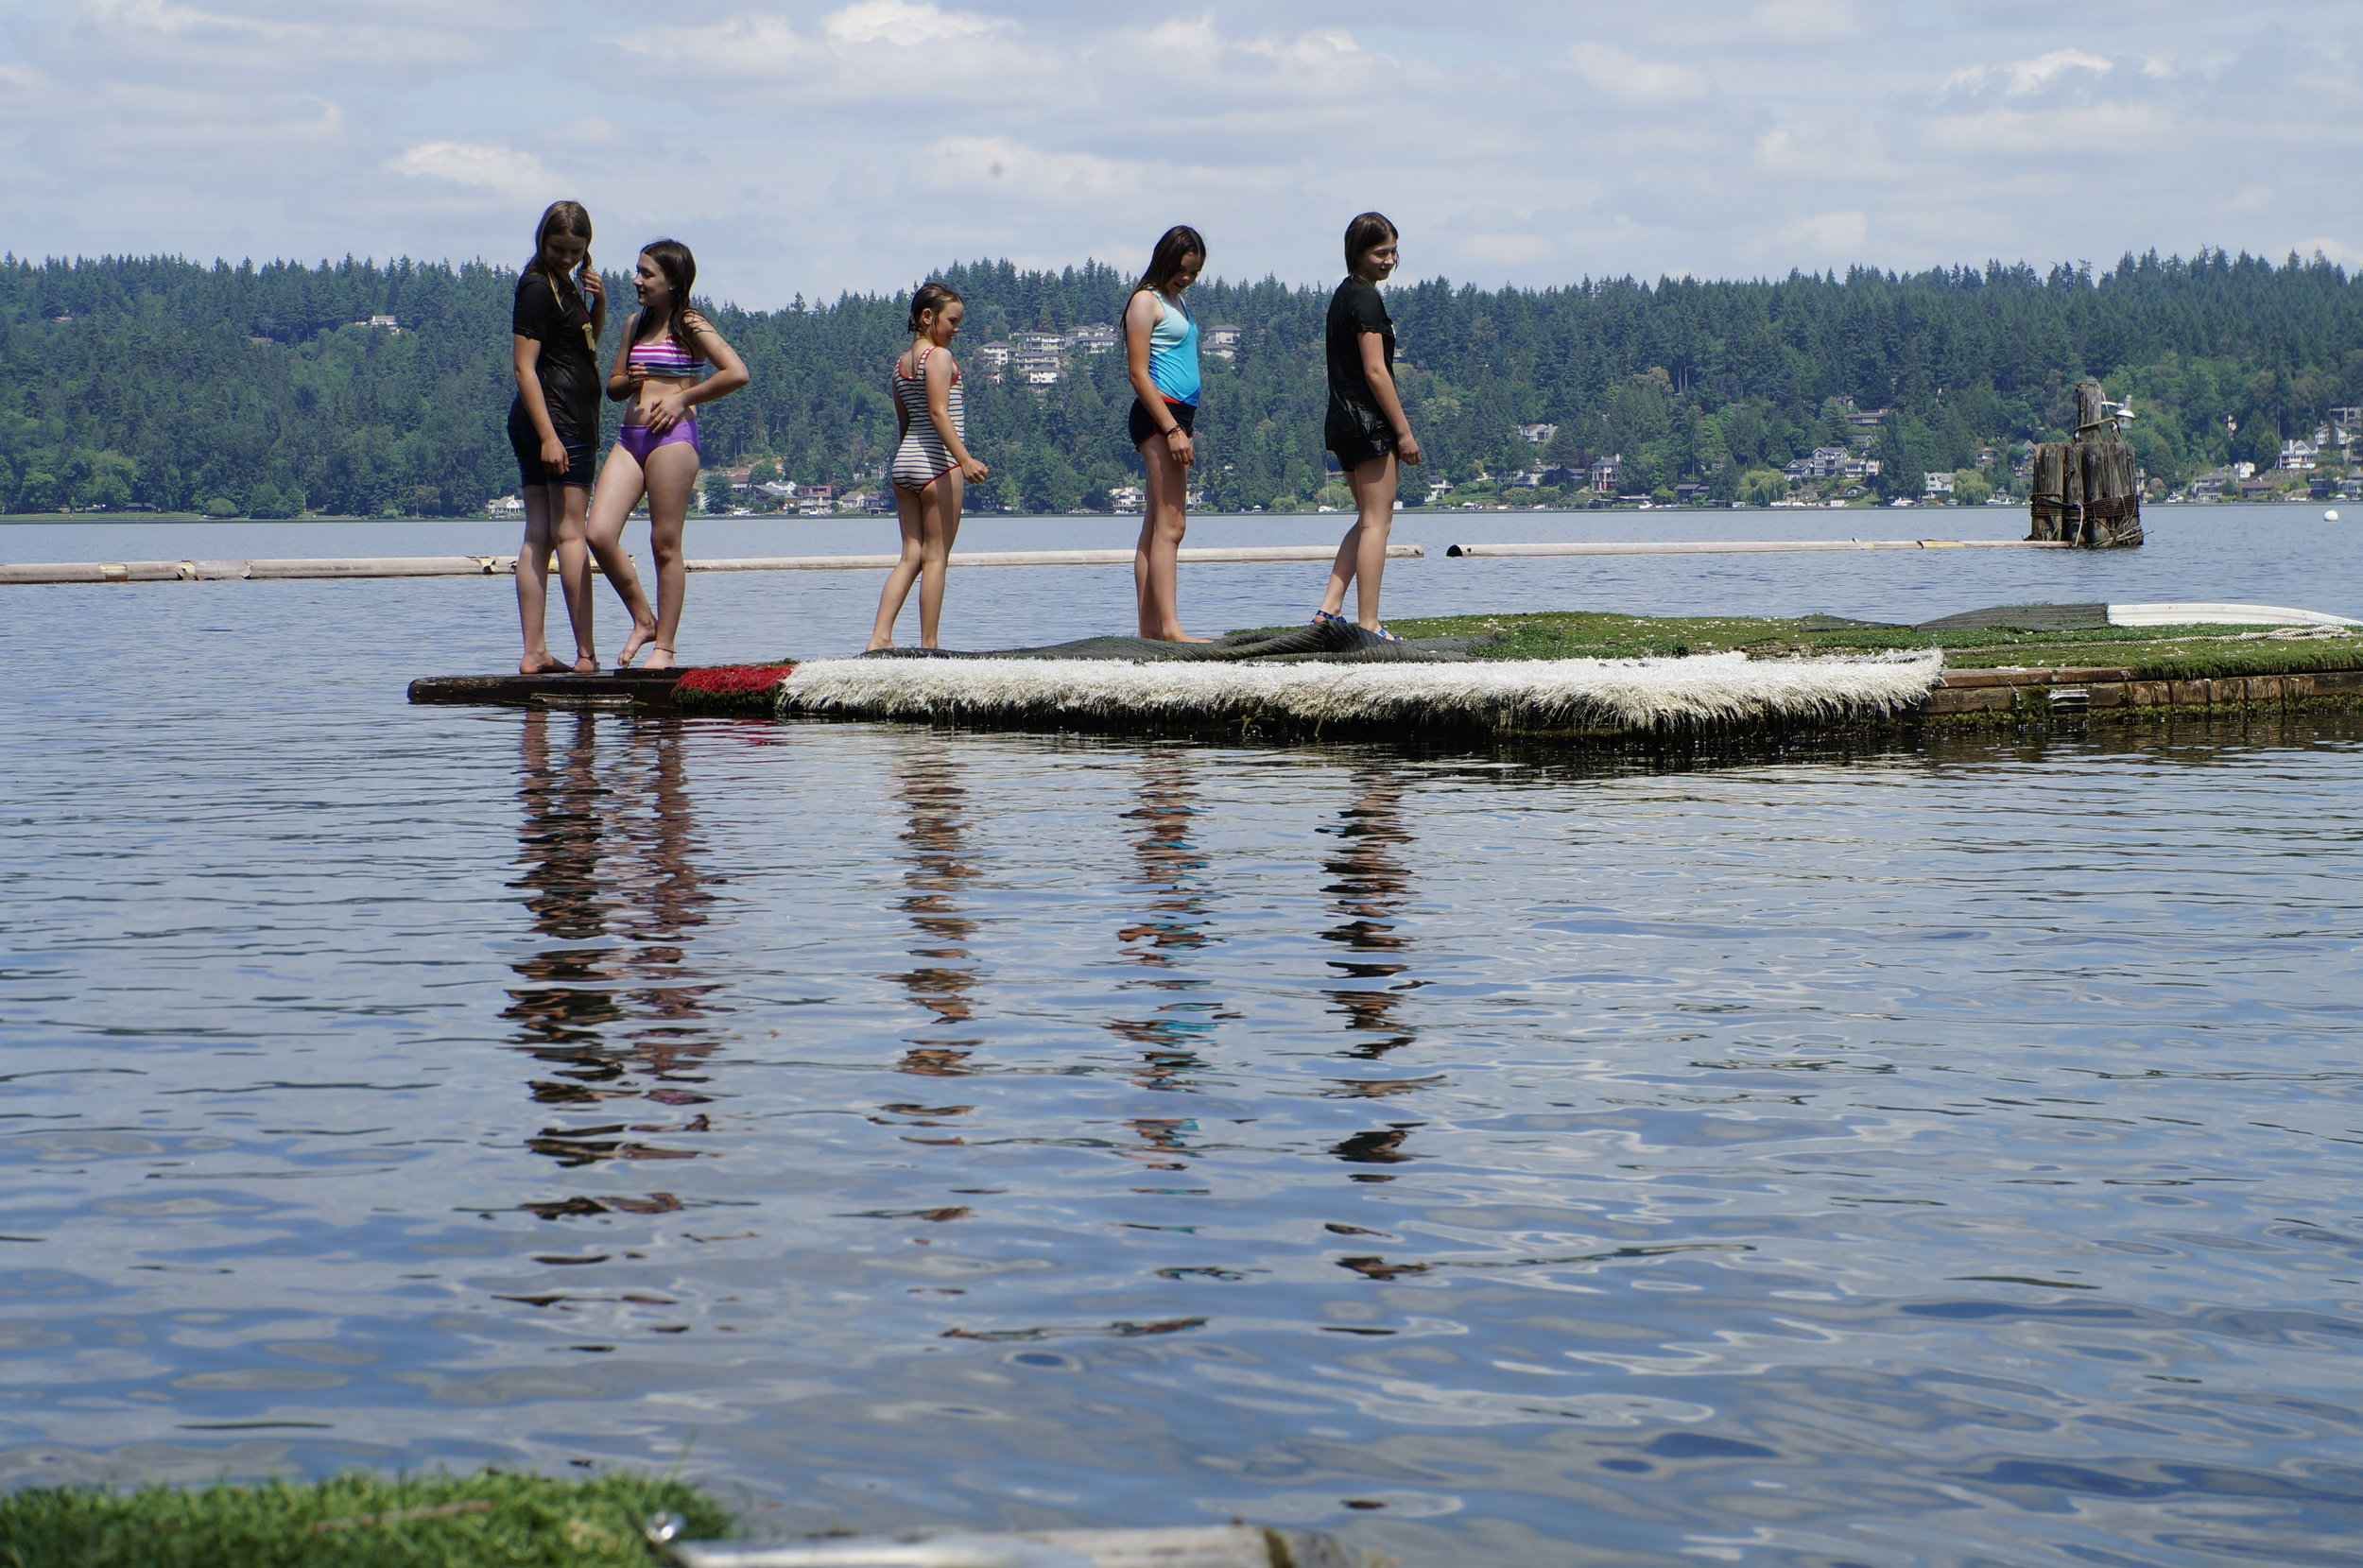 UPCOMING EVENTS for the Homeschool Stewardship Squad   (2nd Thursdays & 4th Wednesdays 11-2)   Thurs 6/13: Pritchard Island Beach, Rainier Beach, GSP *swimming* Wed 6/26: Chinook Bend, Carnation, KC Parks *swimming* Thurs 7/11: Three Forks NA, N. Bend, KC Parks *swimming* Wed 7/24: Mountains to Sound Greenway Trust *swimming*